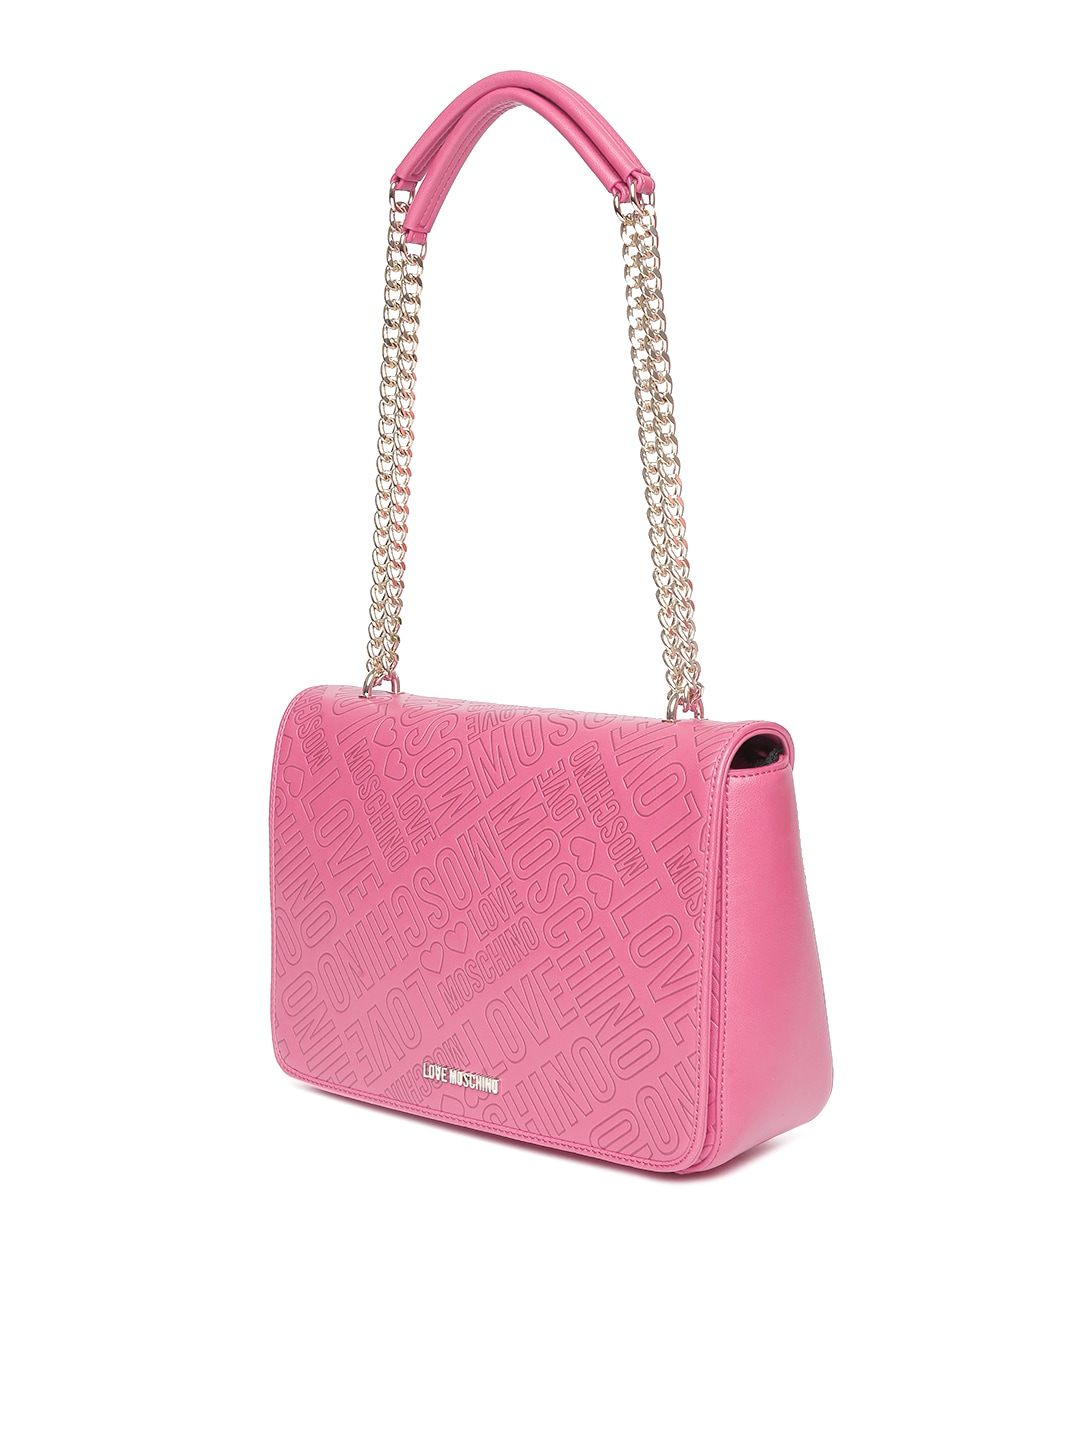 Love Moschino Handbags - Buy Love Moschino Handbags online in India